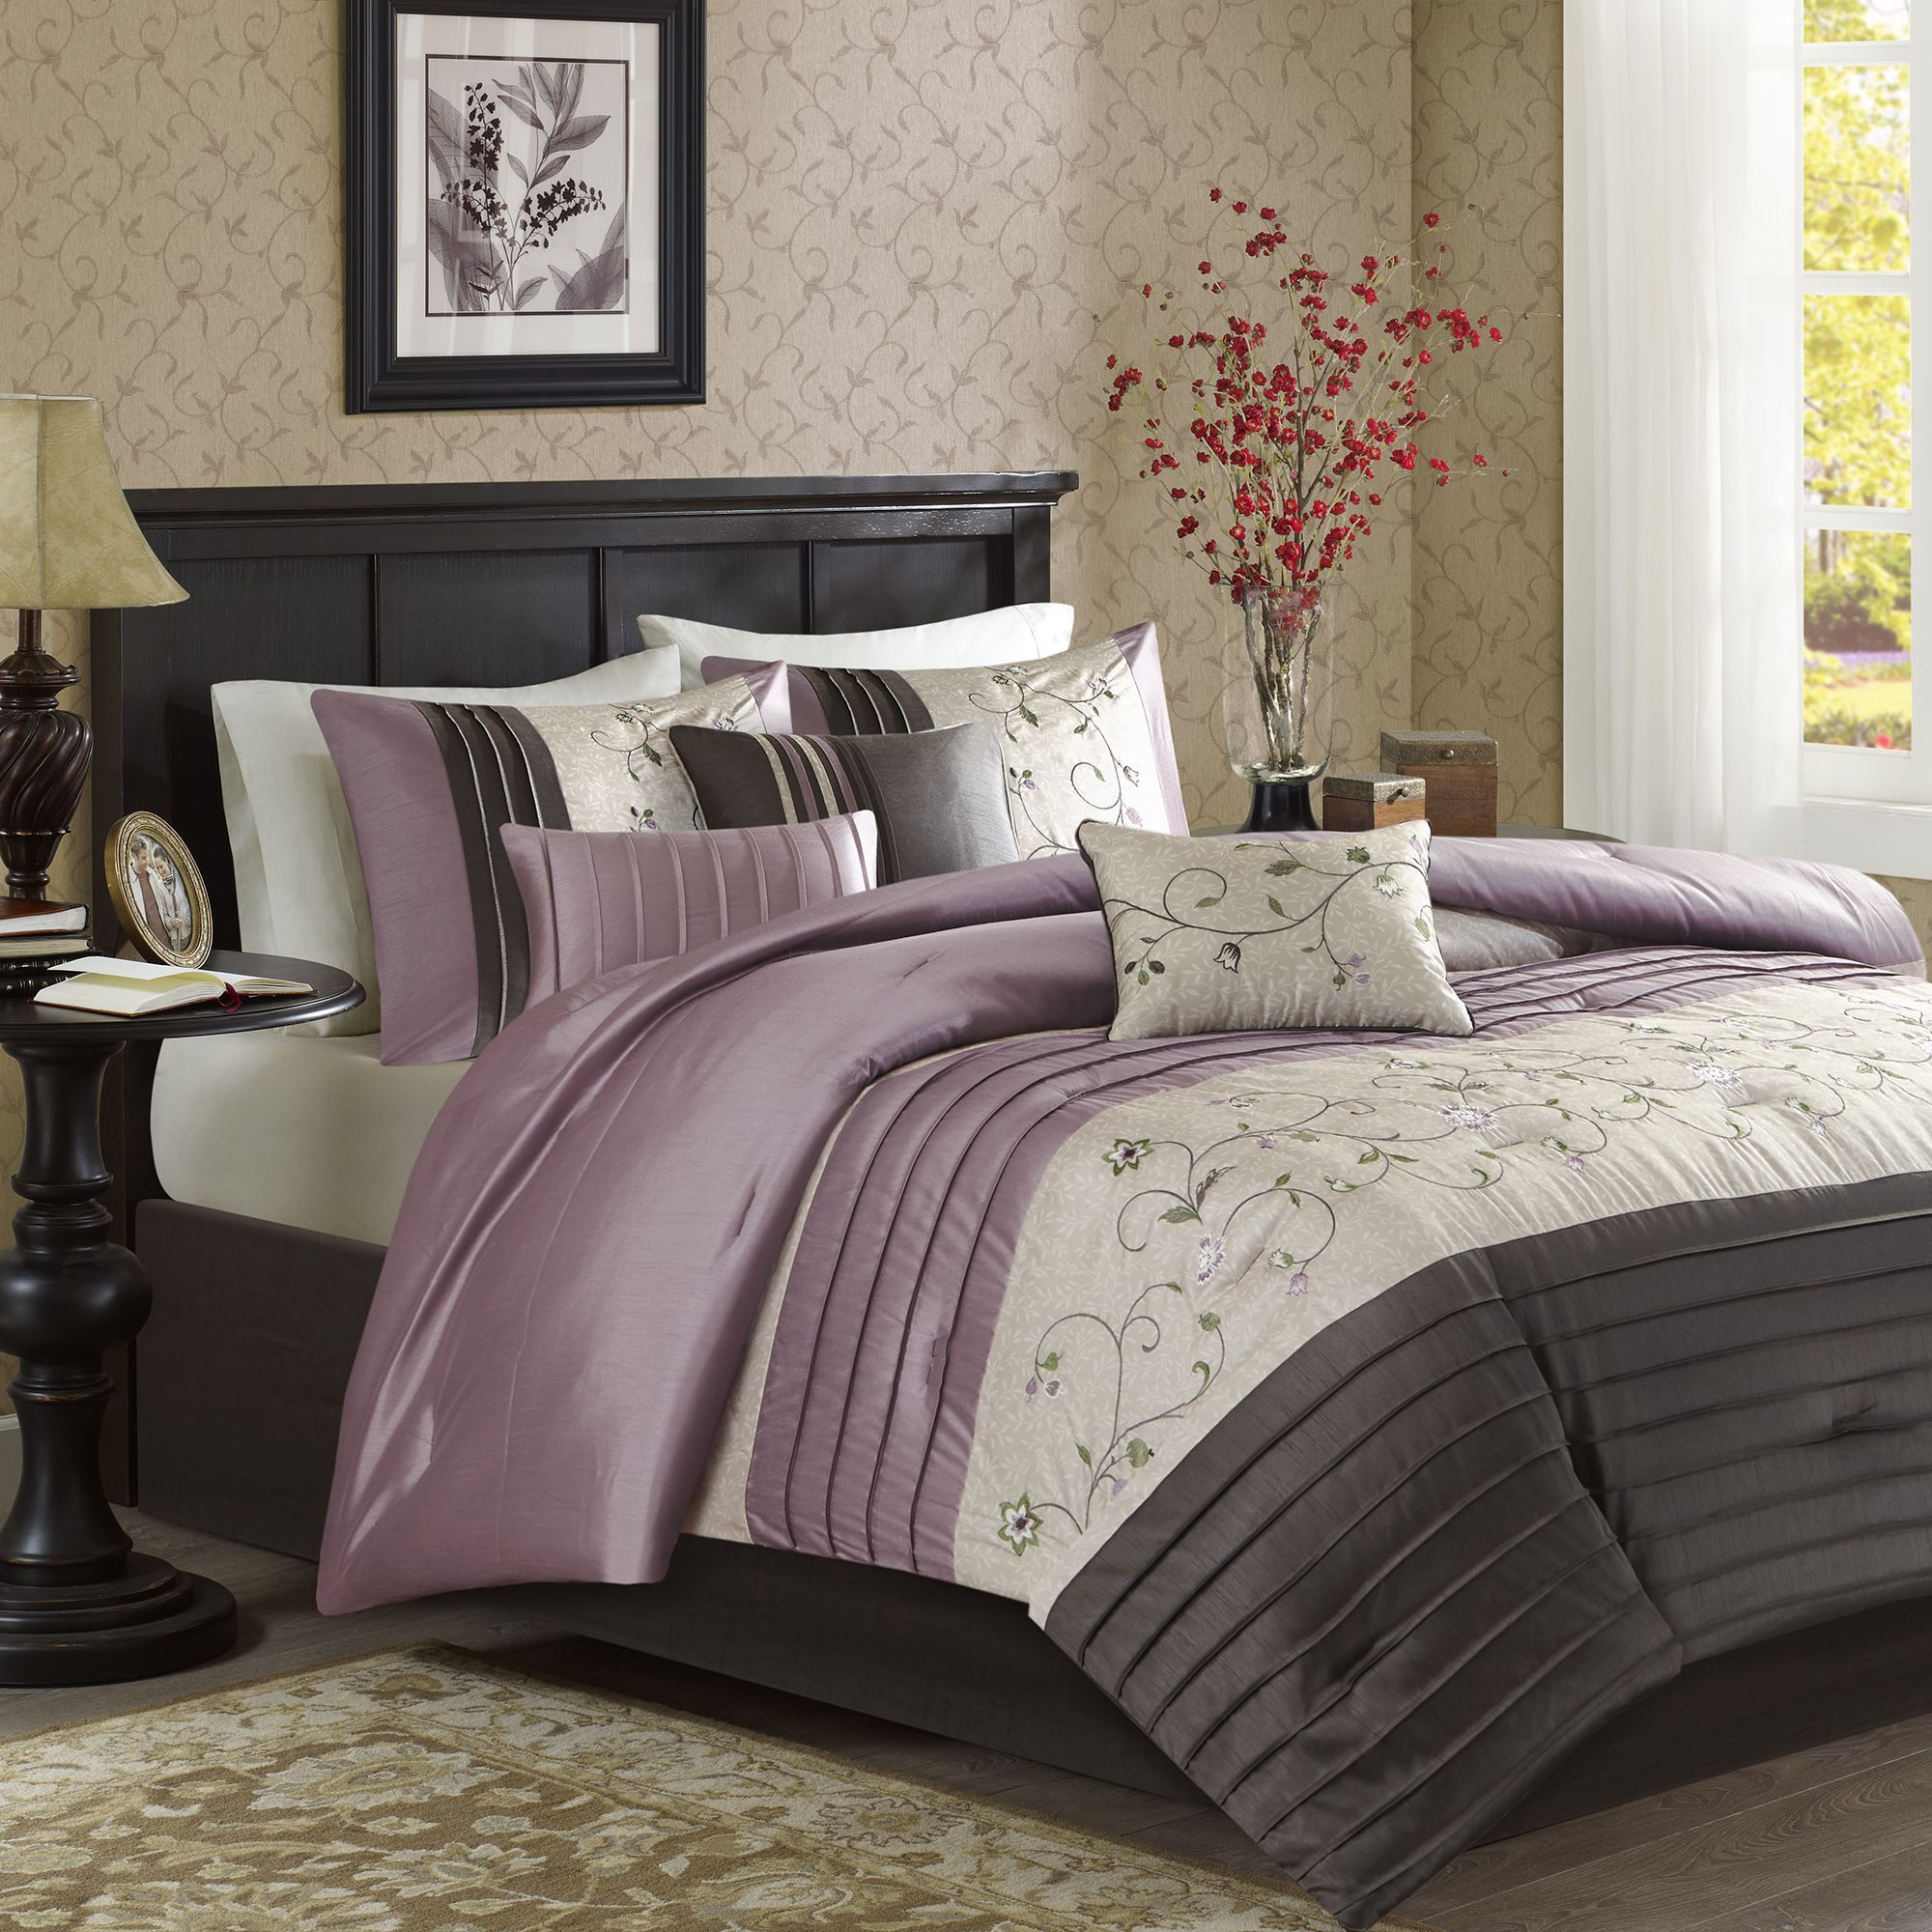 comforter flsfe com amazon queen sets grey mizone set kitchen keisha piece dp purple full bed home